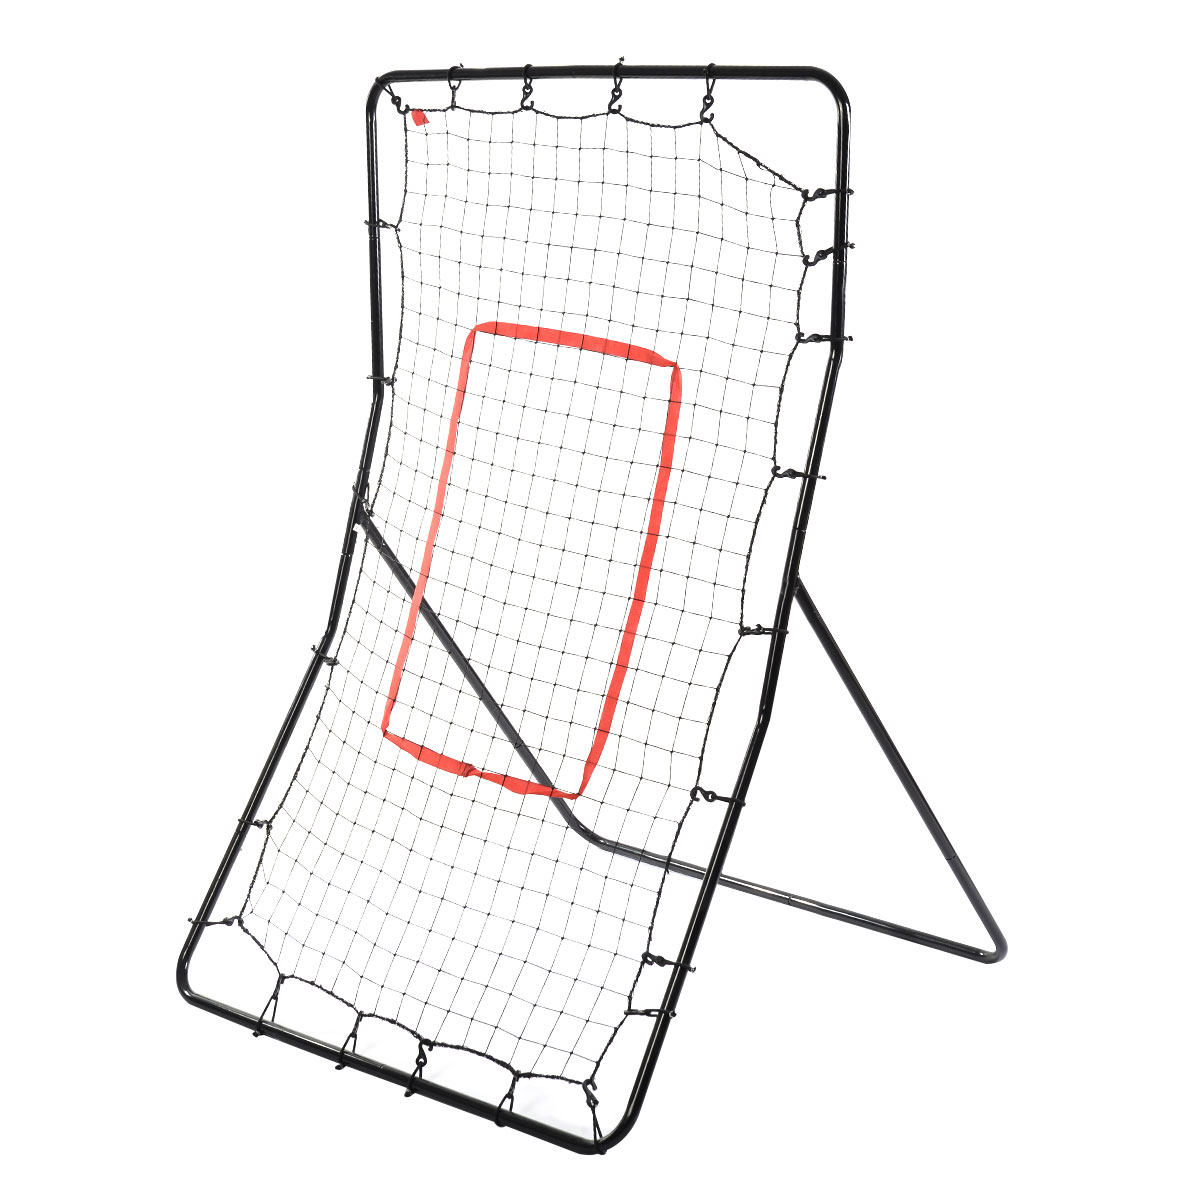 Costway Youth Pitching Return Baseball Training Net Pitchback Rebound Throwing Sport